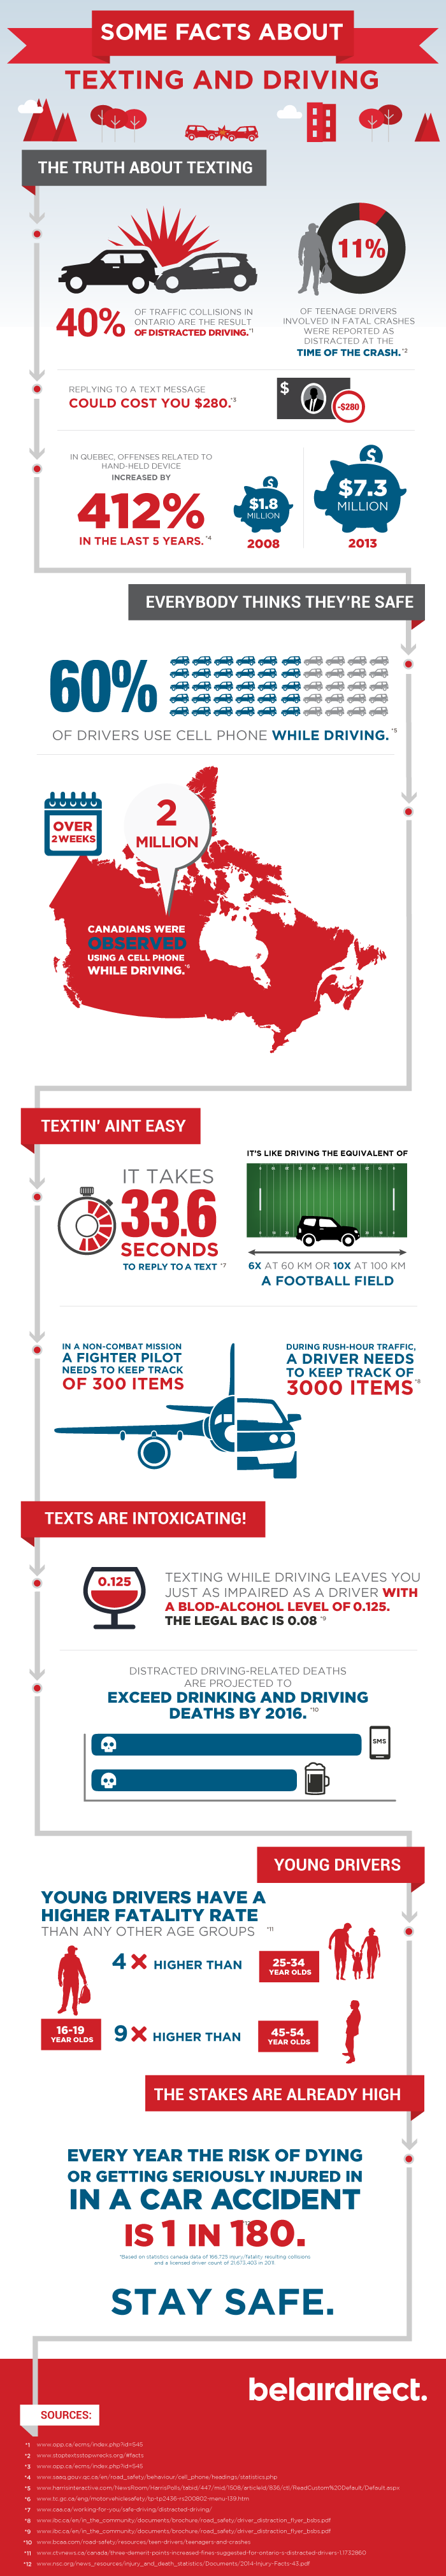 Some Facts about Texting and Driving